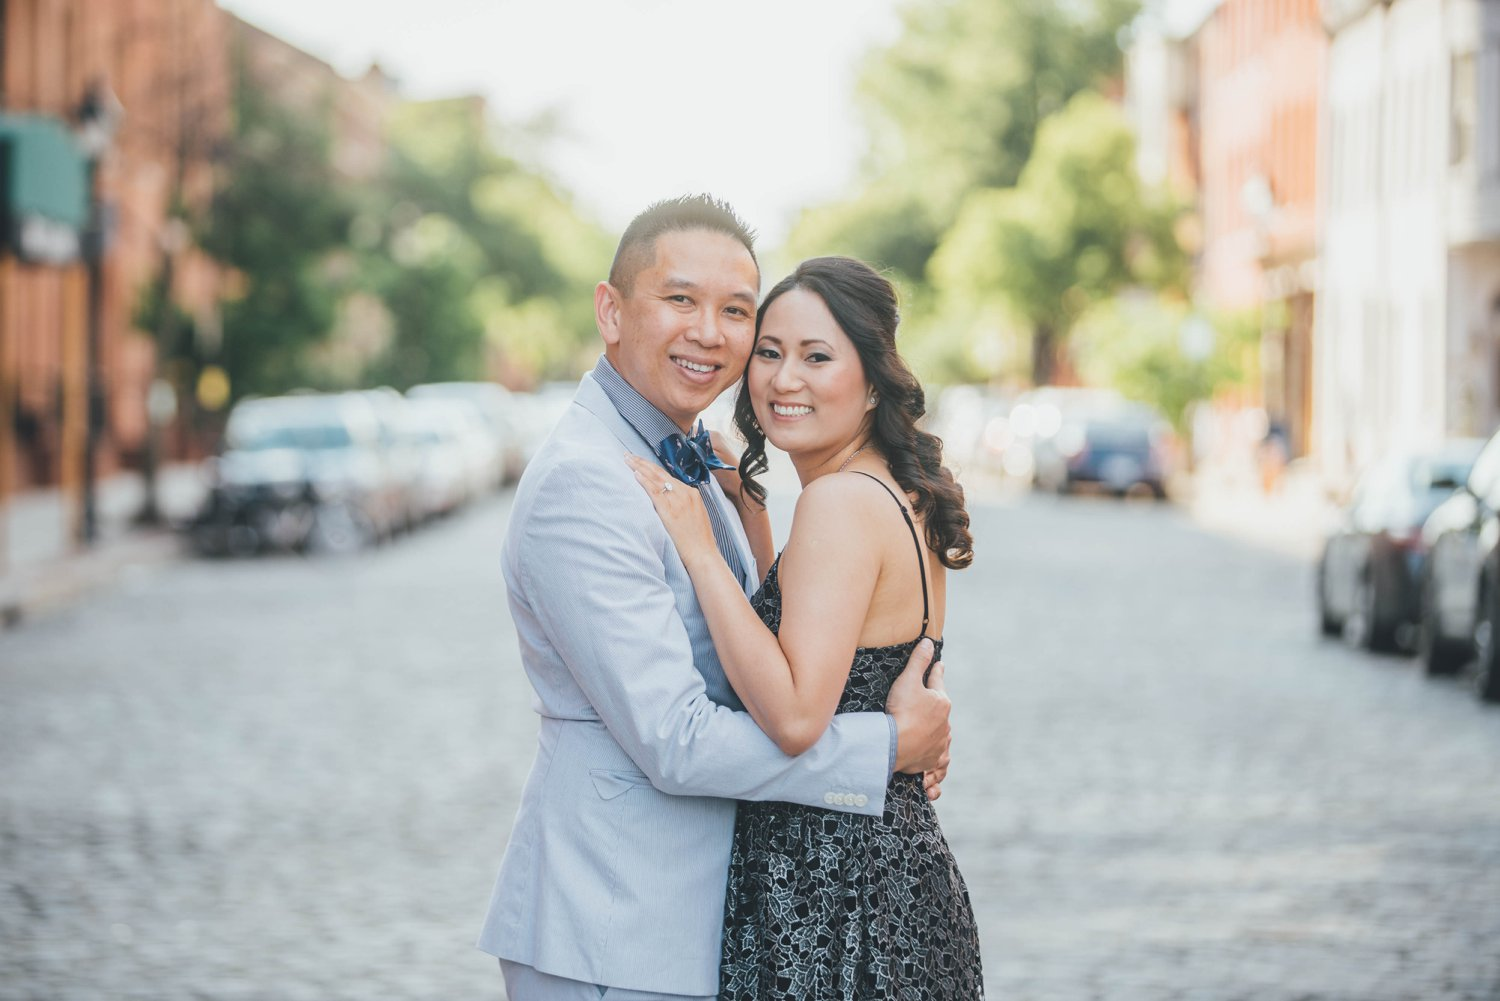 63NYC-NJ-ENGAGEMENT-PHOTOGRAPHY-BY-INTOTHESTORY-MOO-JAE.JPG